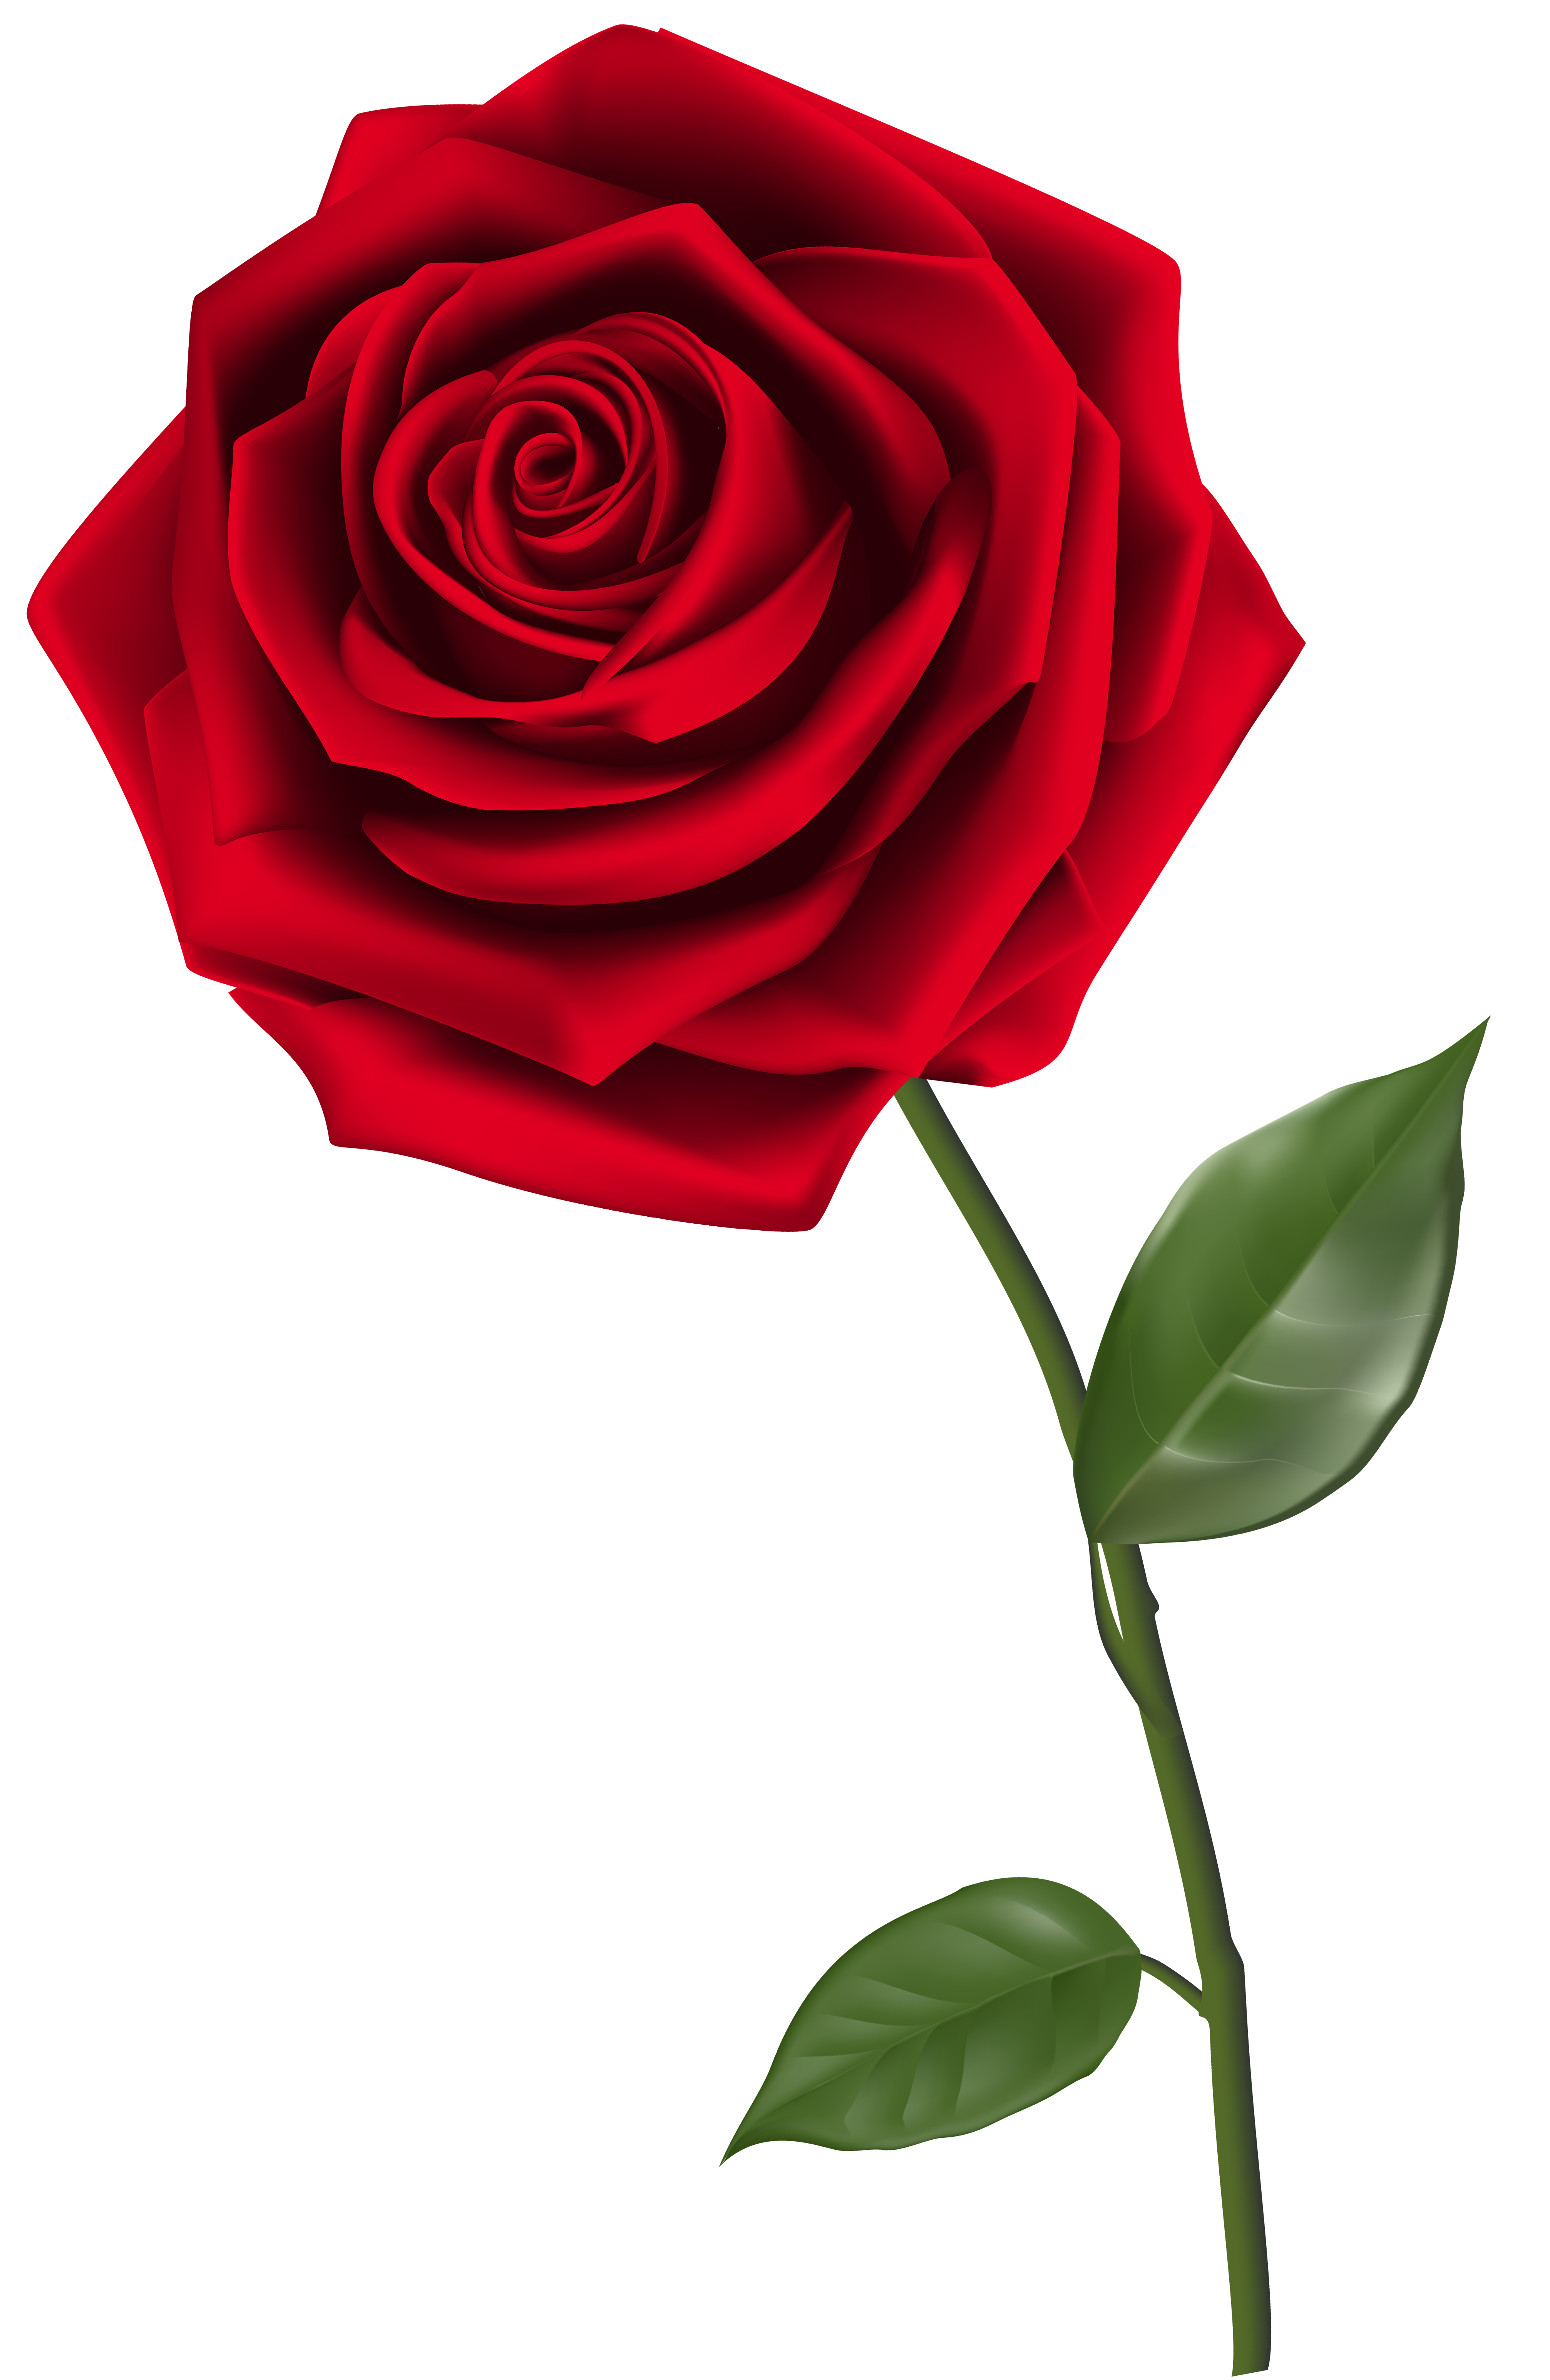 Single Red Rose PNG Clipart Image-Single Red Rose PNG Clipart Image-10